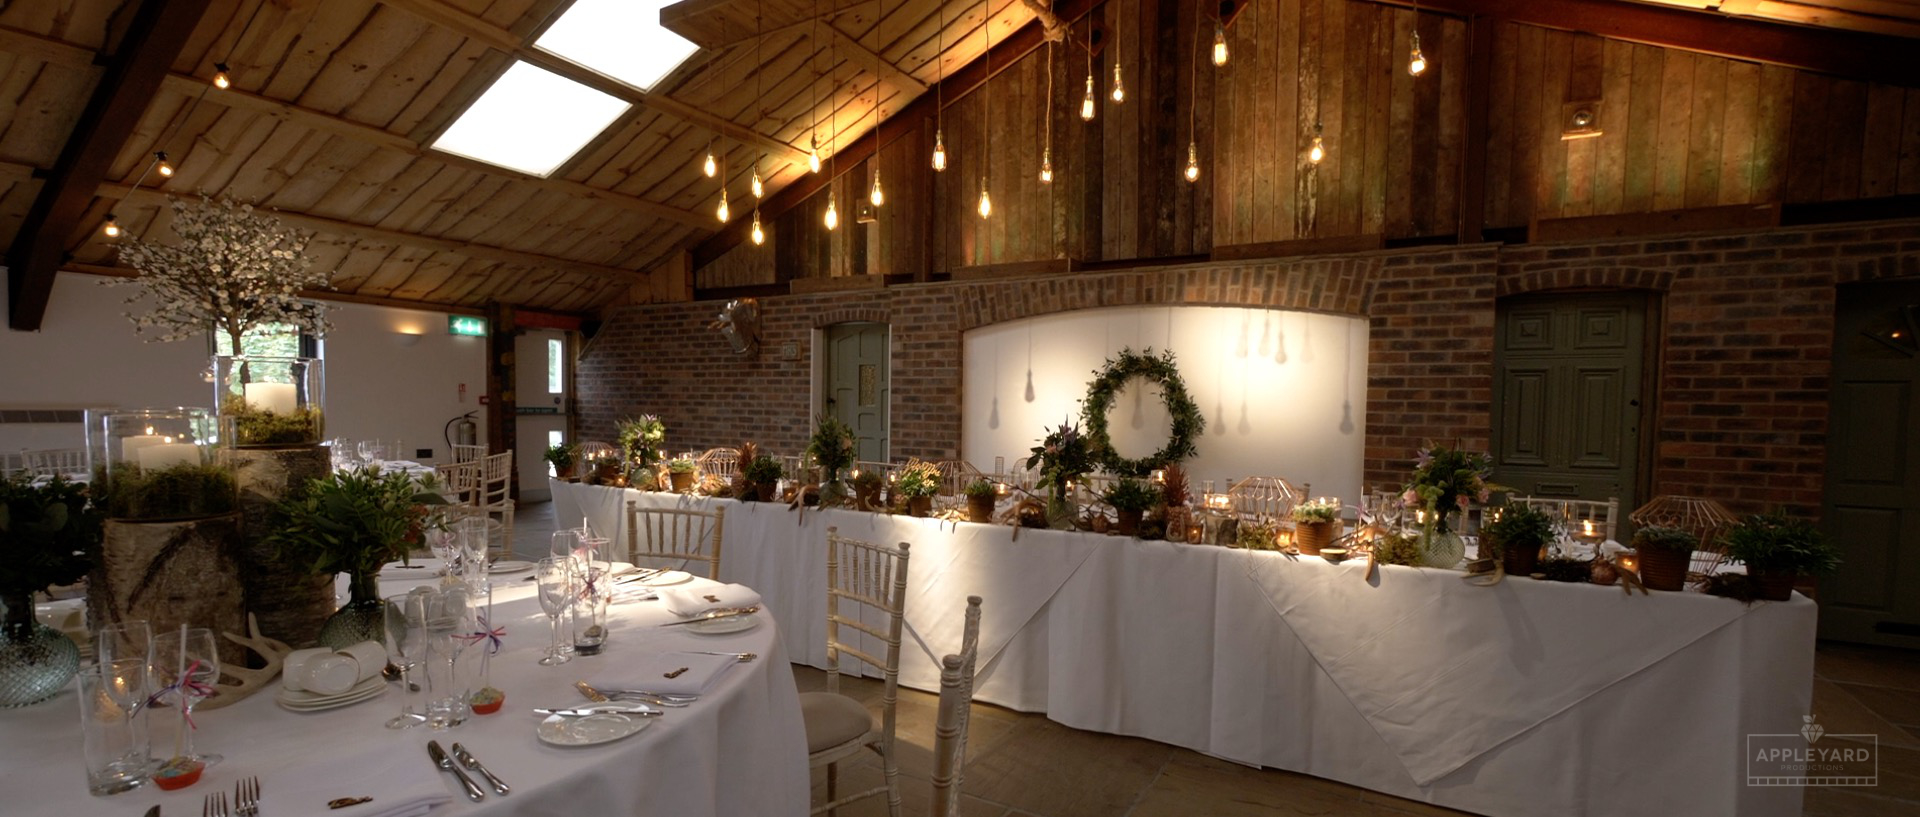 OWEN HOUSE WEDDING BARN 5.jpg